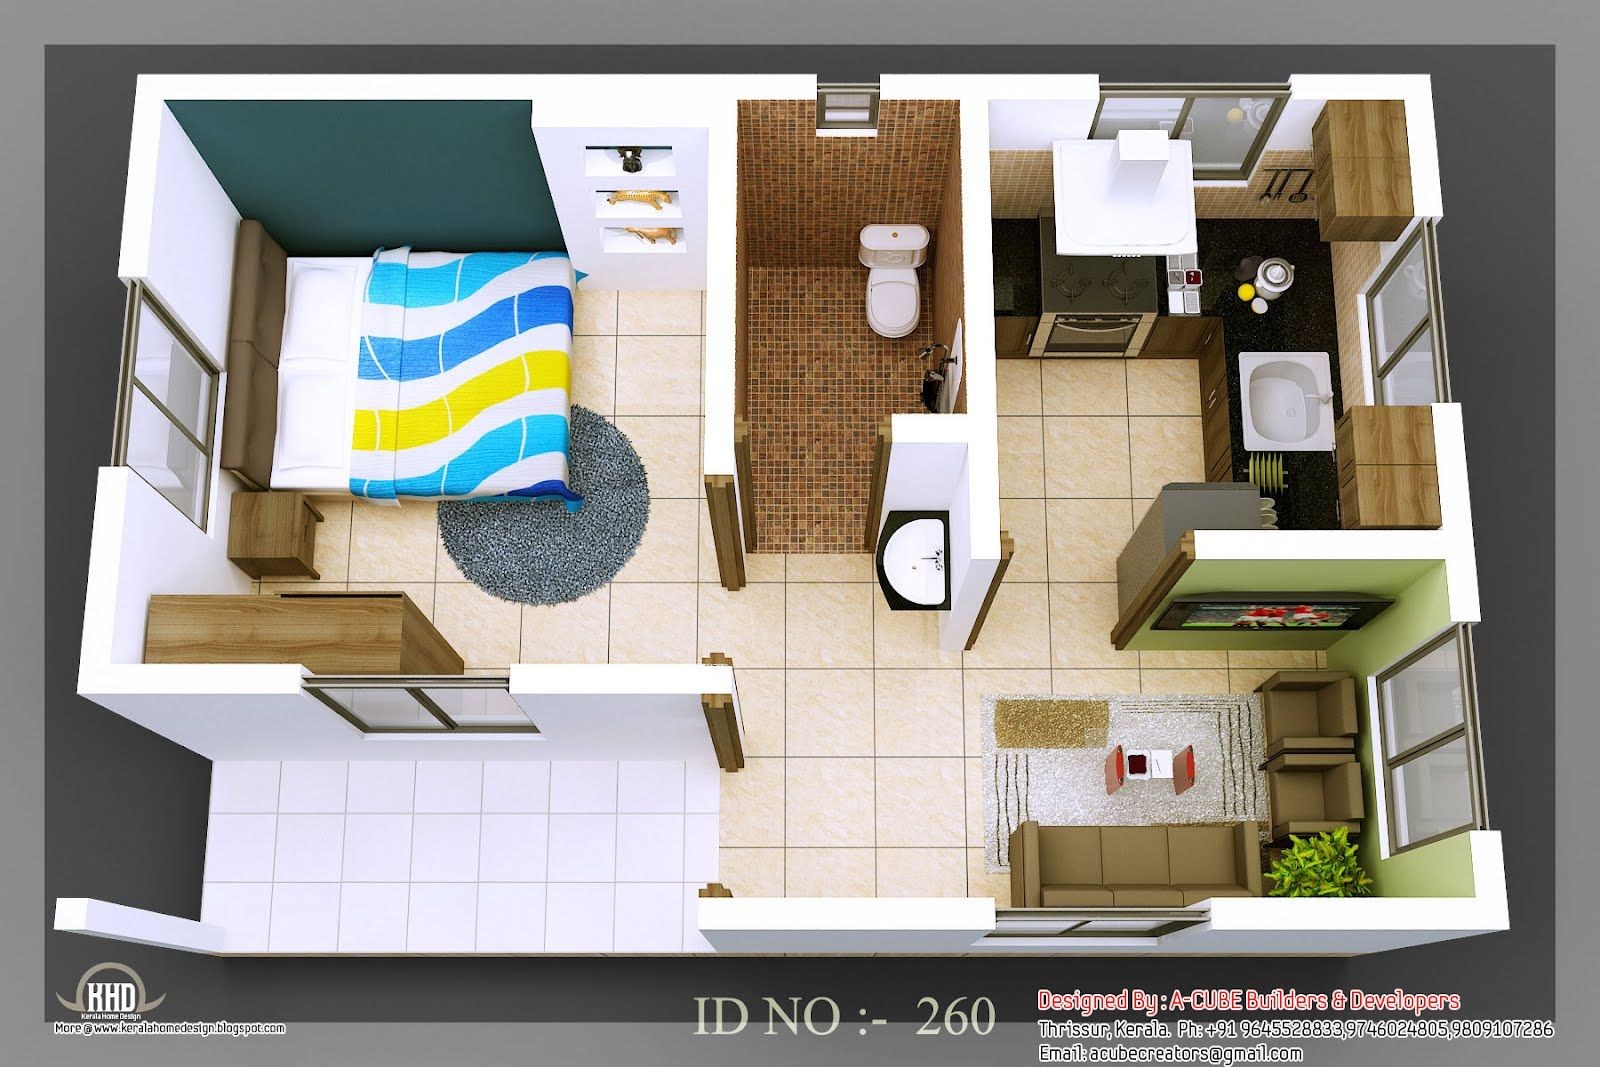 tiny homes 3d isometric views of small house plans indian home decor - Small House Plans